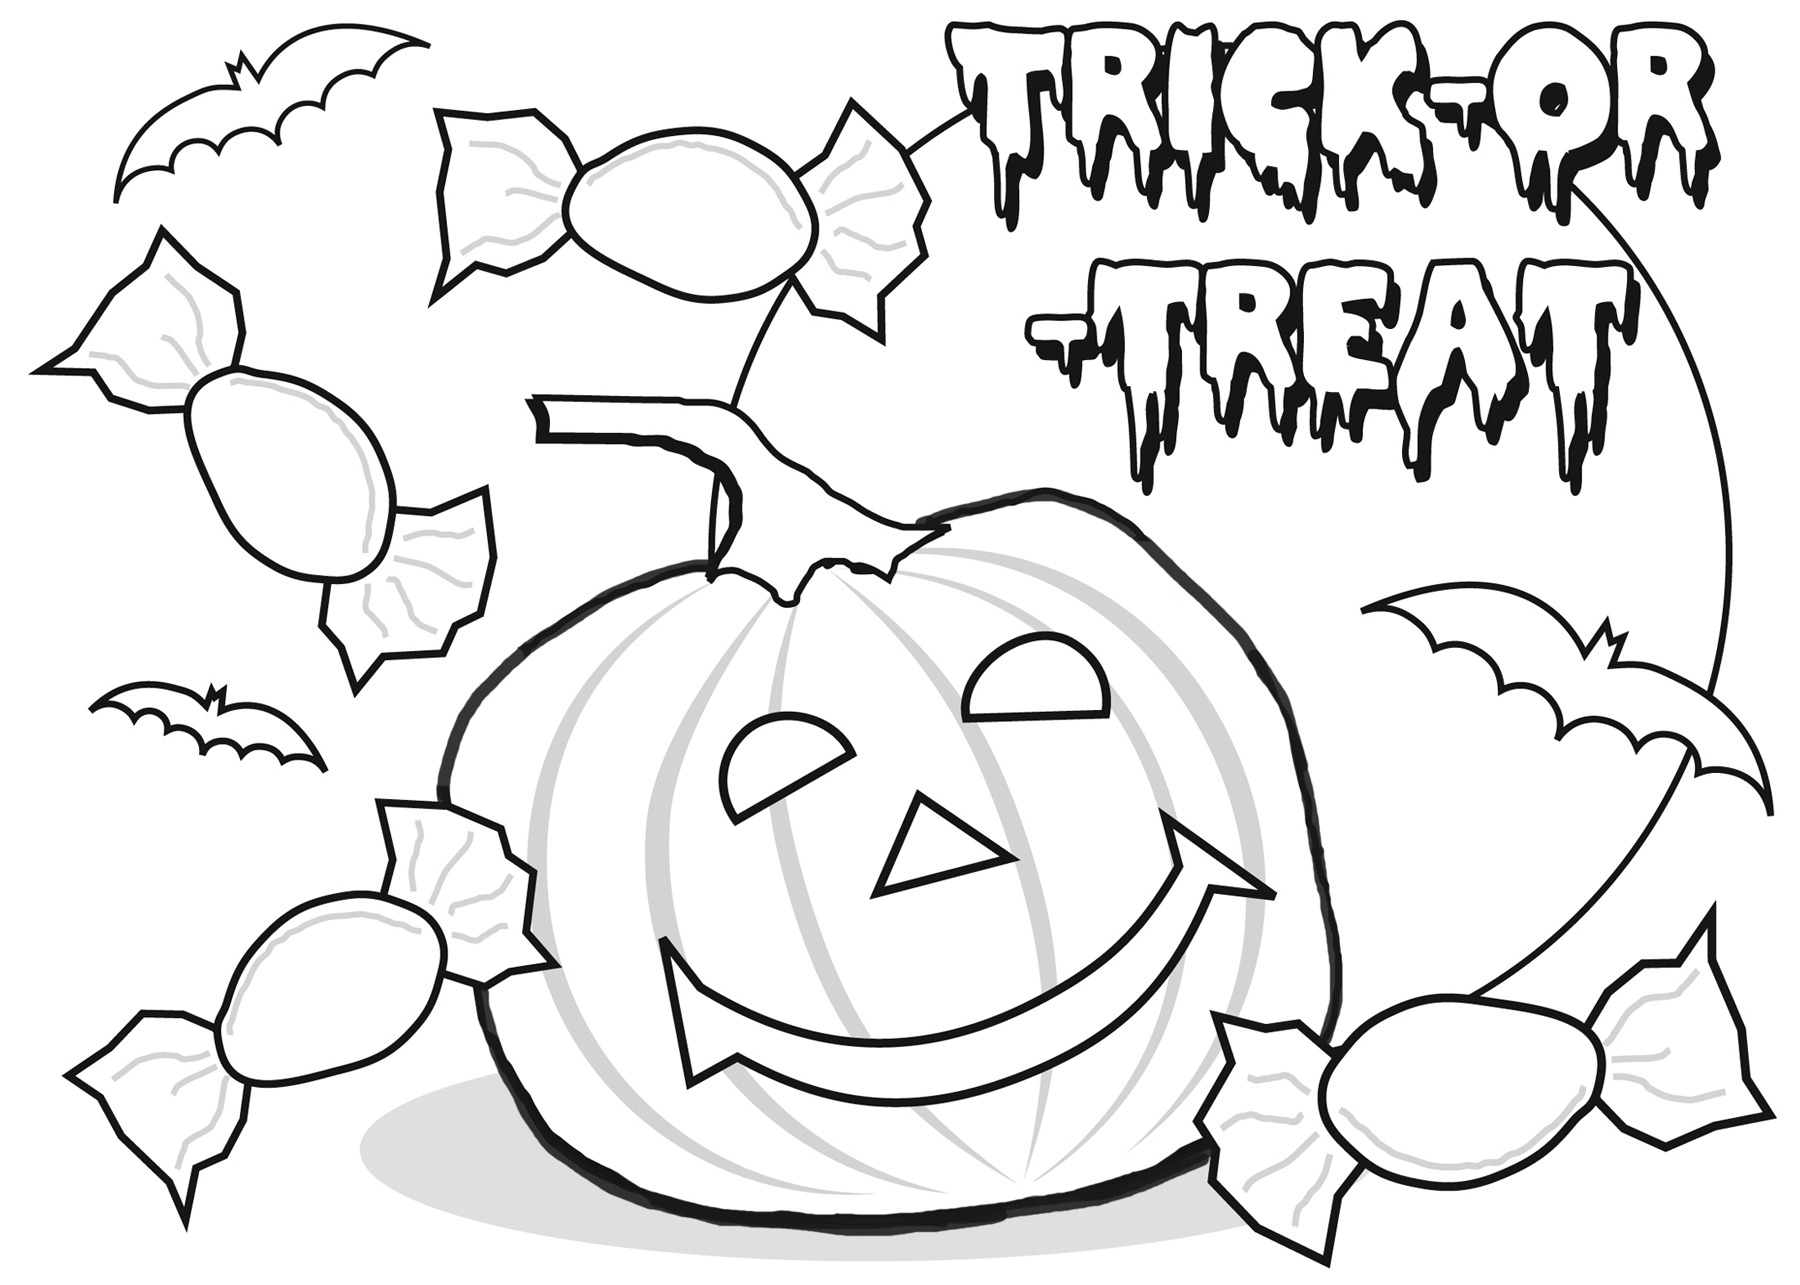 haloween coloring pages halloween free to color for kids halloween kids coloring haloween pages coloring